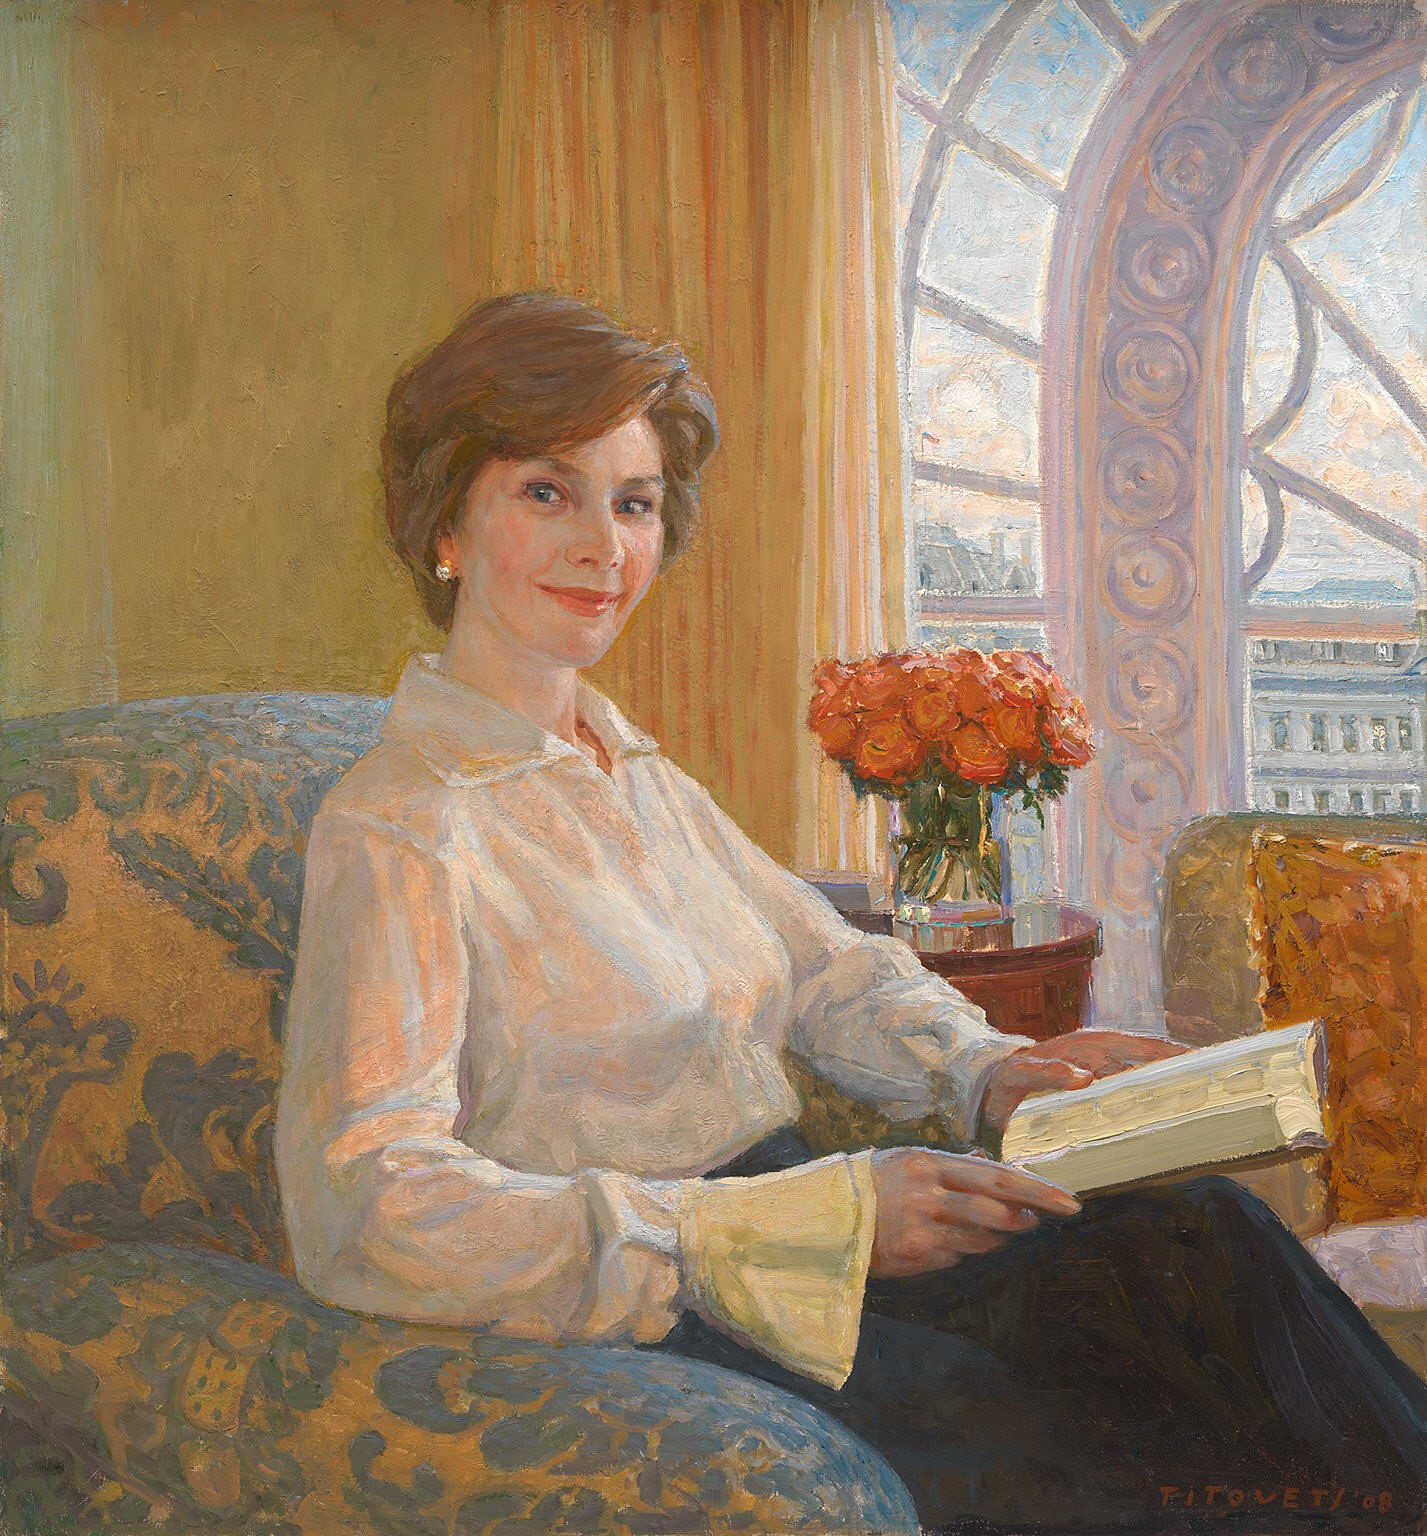 Painting of a woman in a white blouse sitting in a chair and looking up from a book